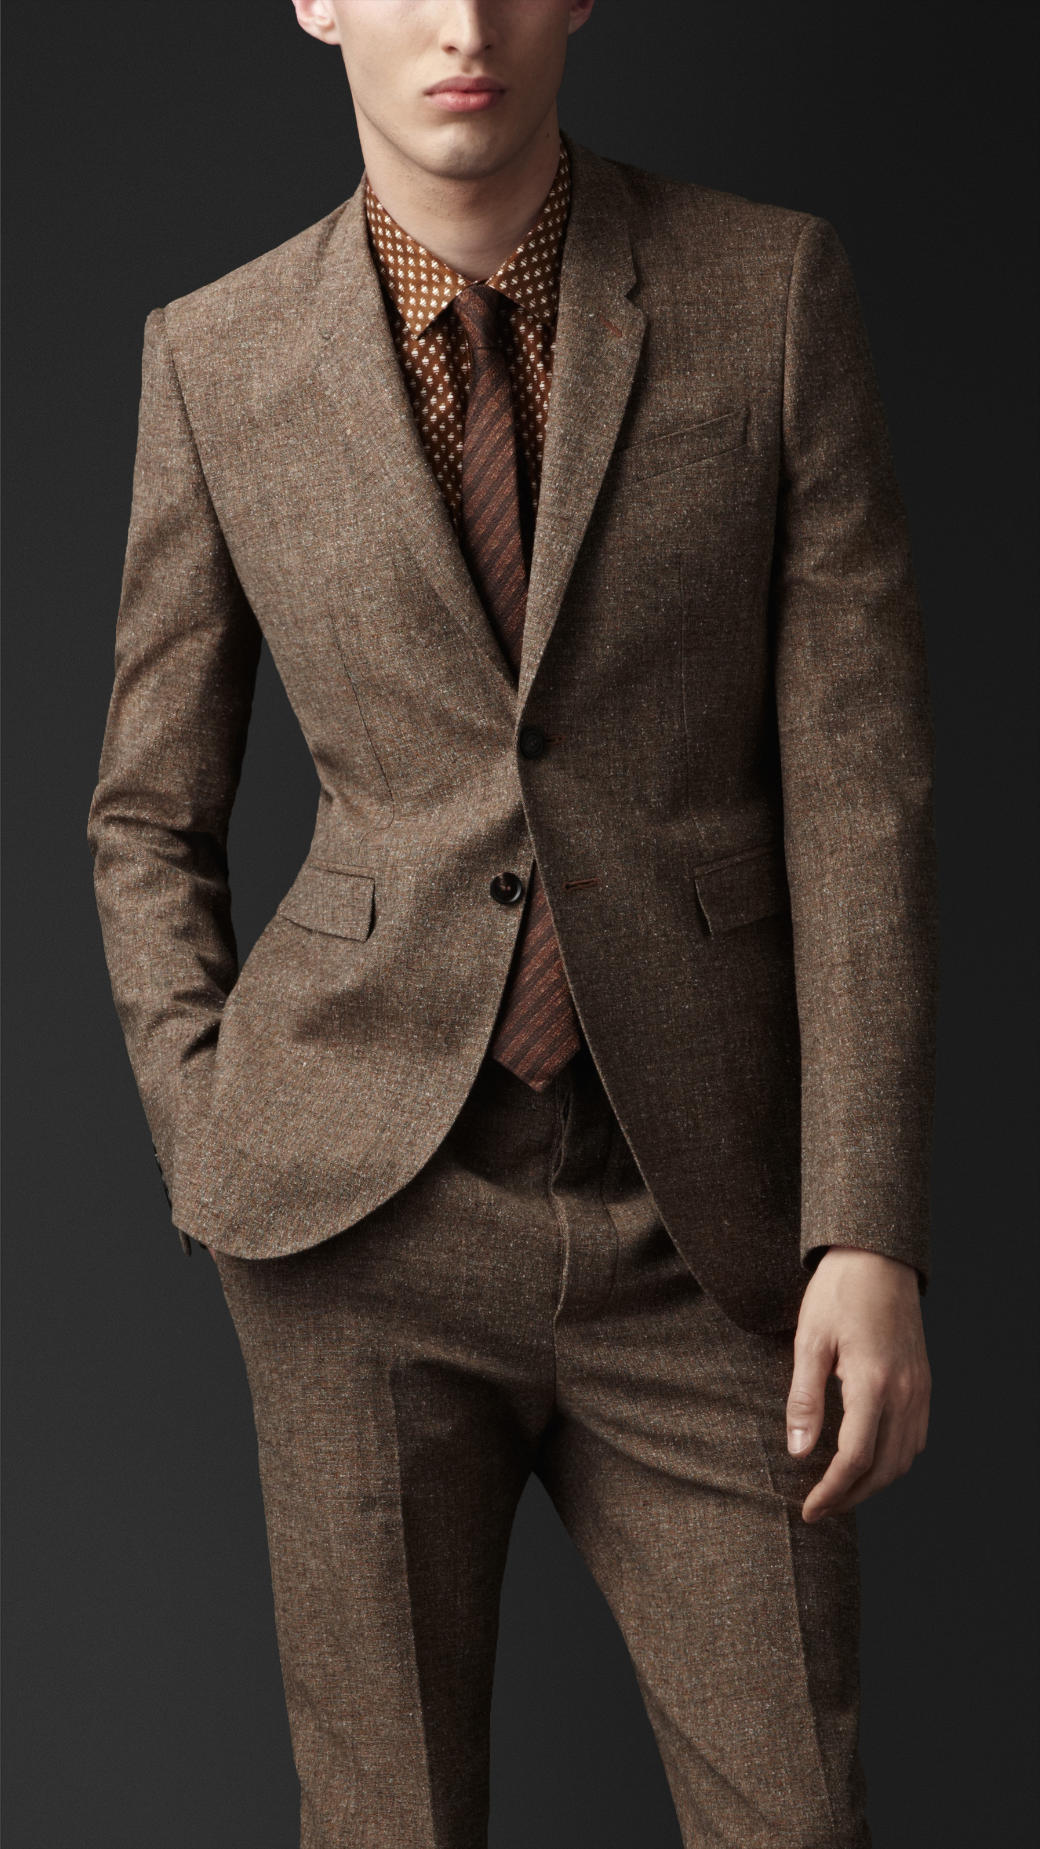 Lyst Burberry Prorsum Slim Fit Tweed Jacket In Brown For Men